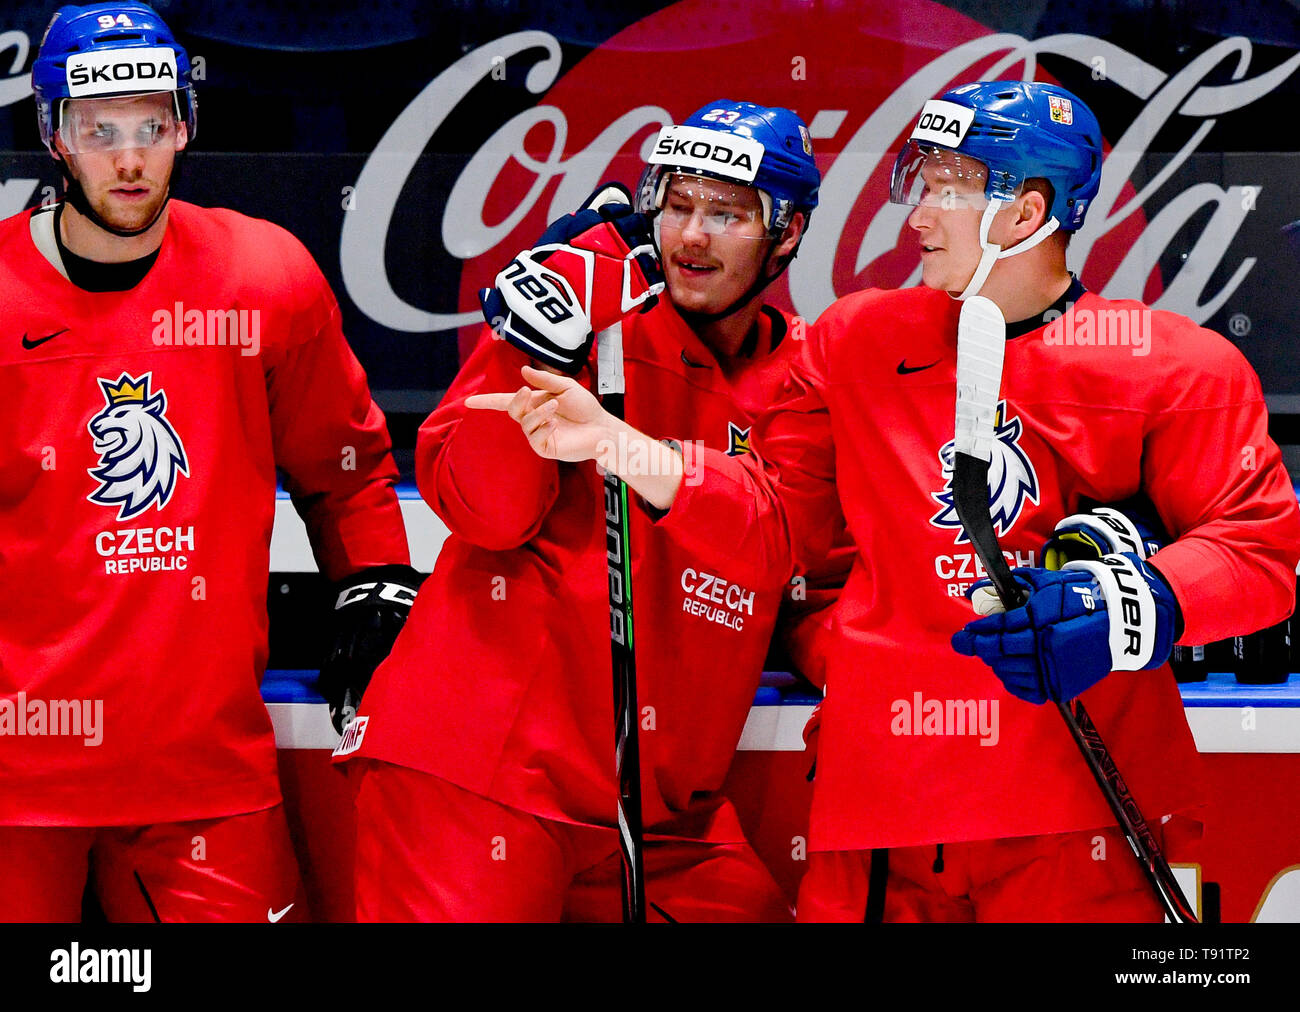 Bratislava, Slovakia. 16th May, 2019. Czech players L-R RADEK FAKSA, DMITRIJ JASKIN, ONDREJ PALAT attend a training session of the Czech national team within the 2019 IIHF World Championship in Bratislava, Slovakia, on May 16, 2019, prior to the match against Latvia. Credit: Vit Simanek/CTK Photo/Alamy Live News Stock Photo